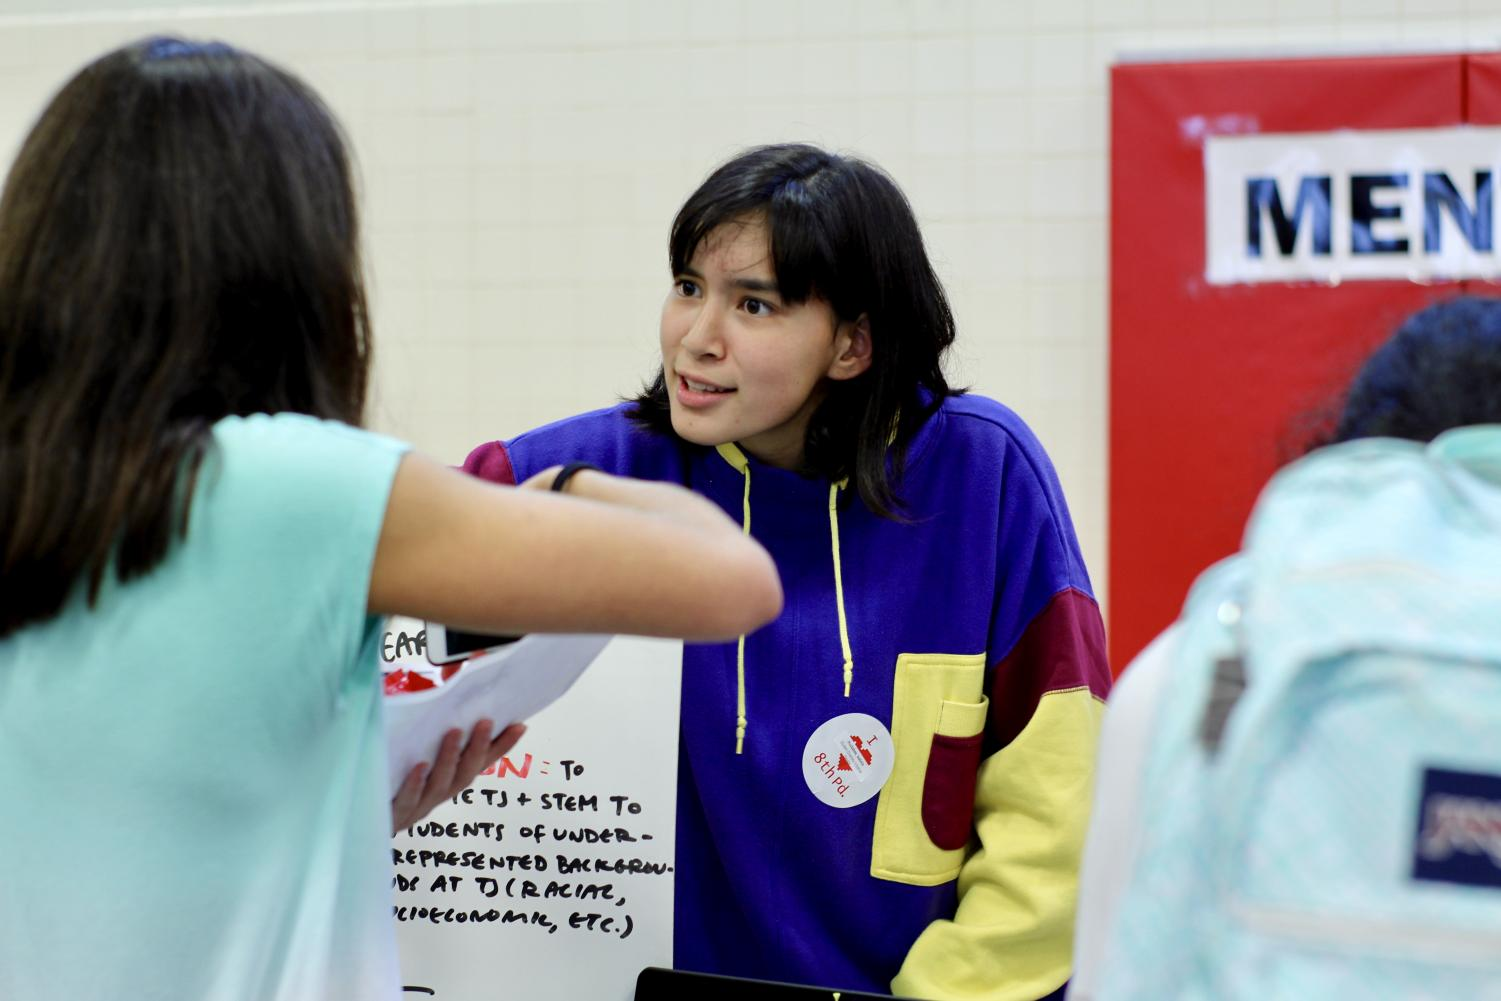 Isabela+Huckabee+informs+visitors+to+her+booth+about+her+club%2C+Student+Diversity+Initiative+%28SDI%29.+SDI+works+to+promote+diversity+in+the+TJ+community.+